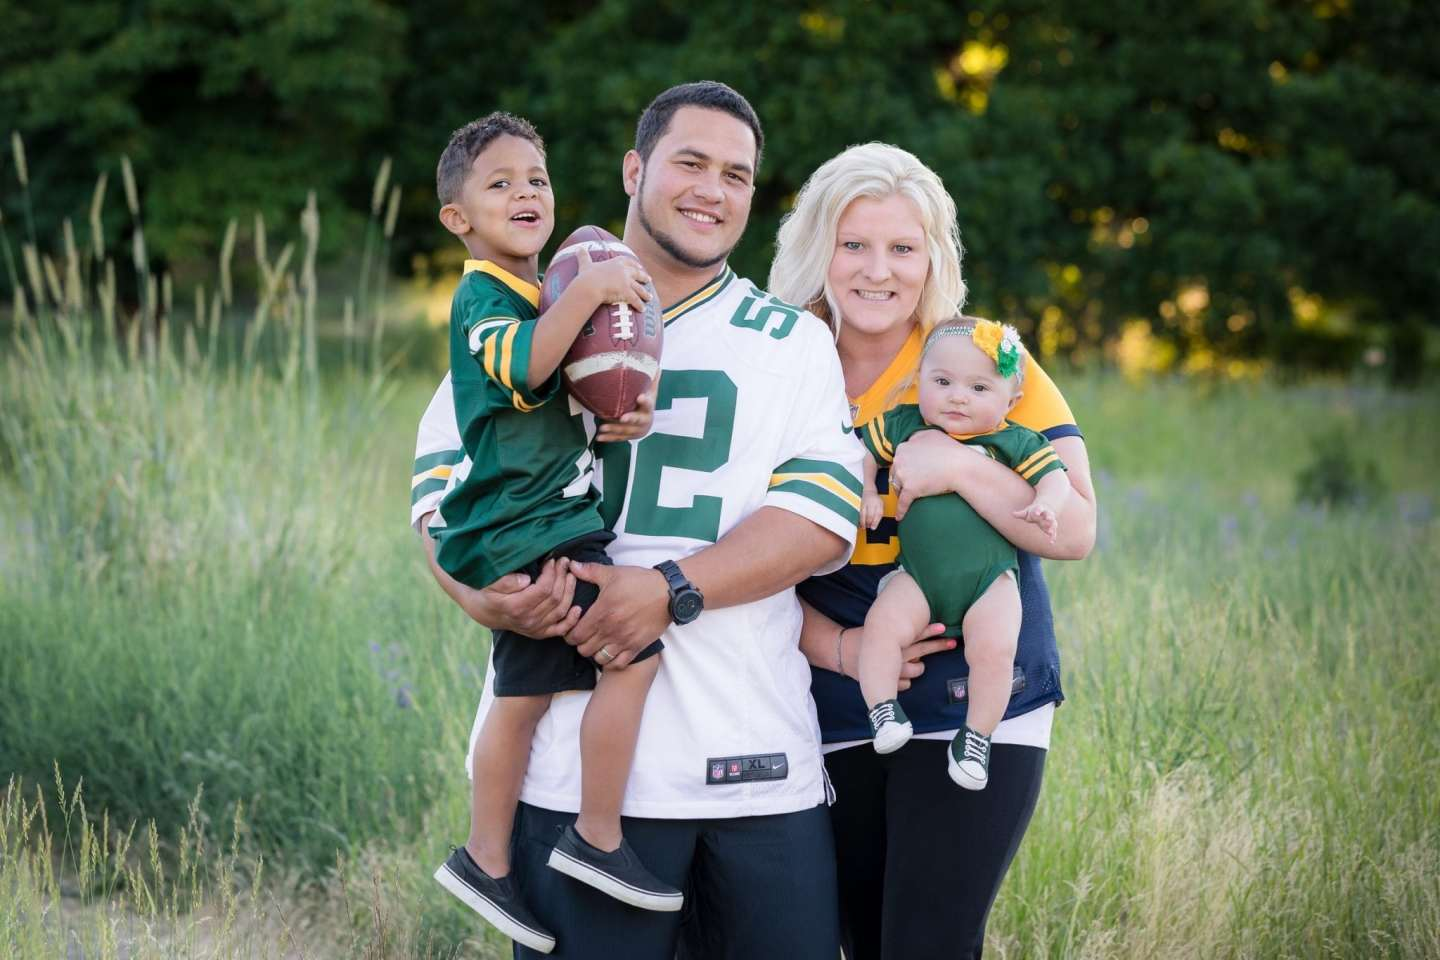 themed family portrait session